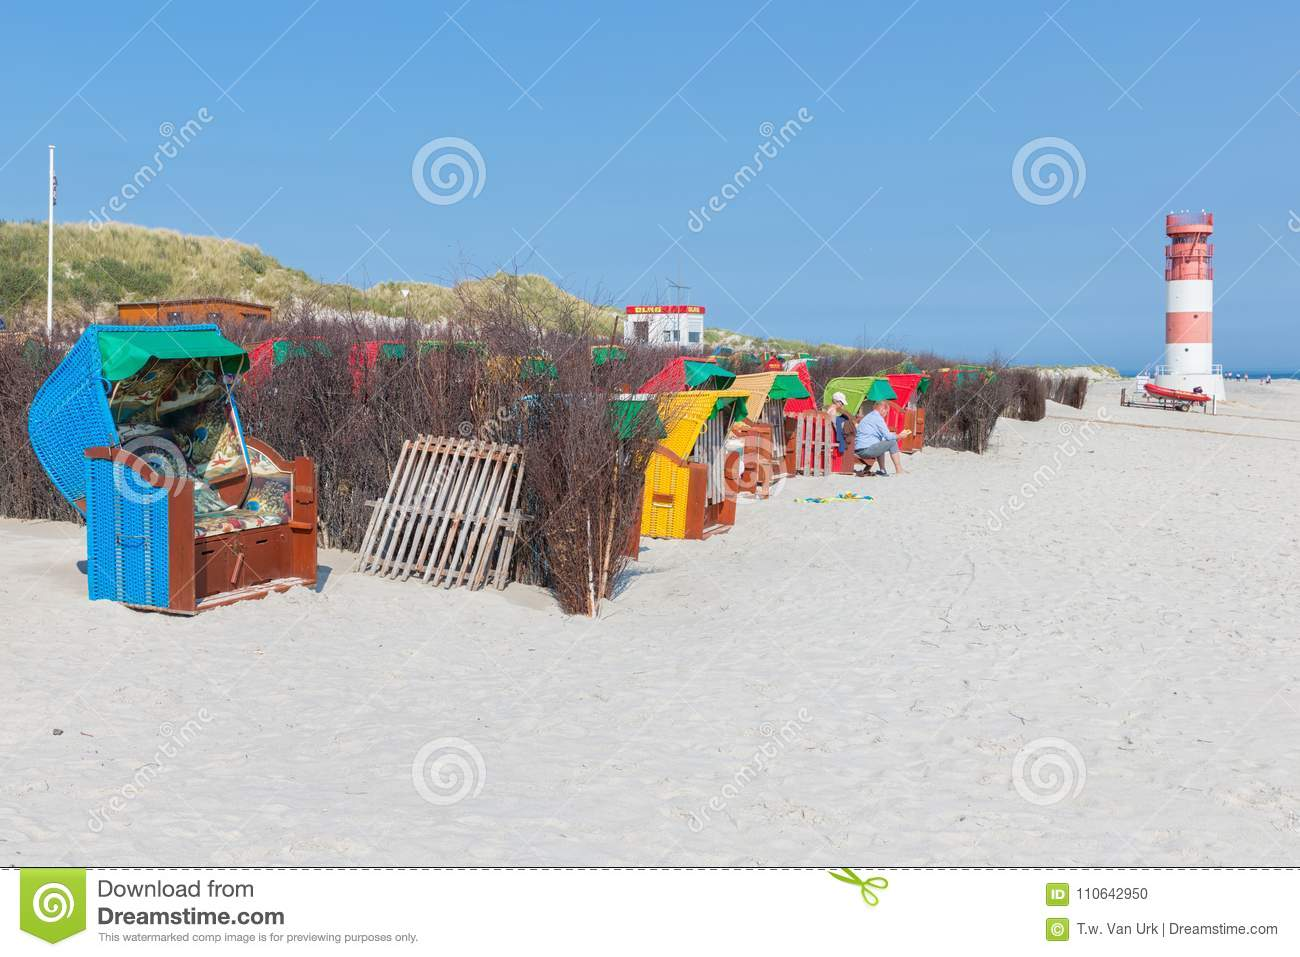 Seaside visitors in colorful beach chairs at German island Dune